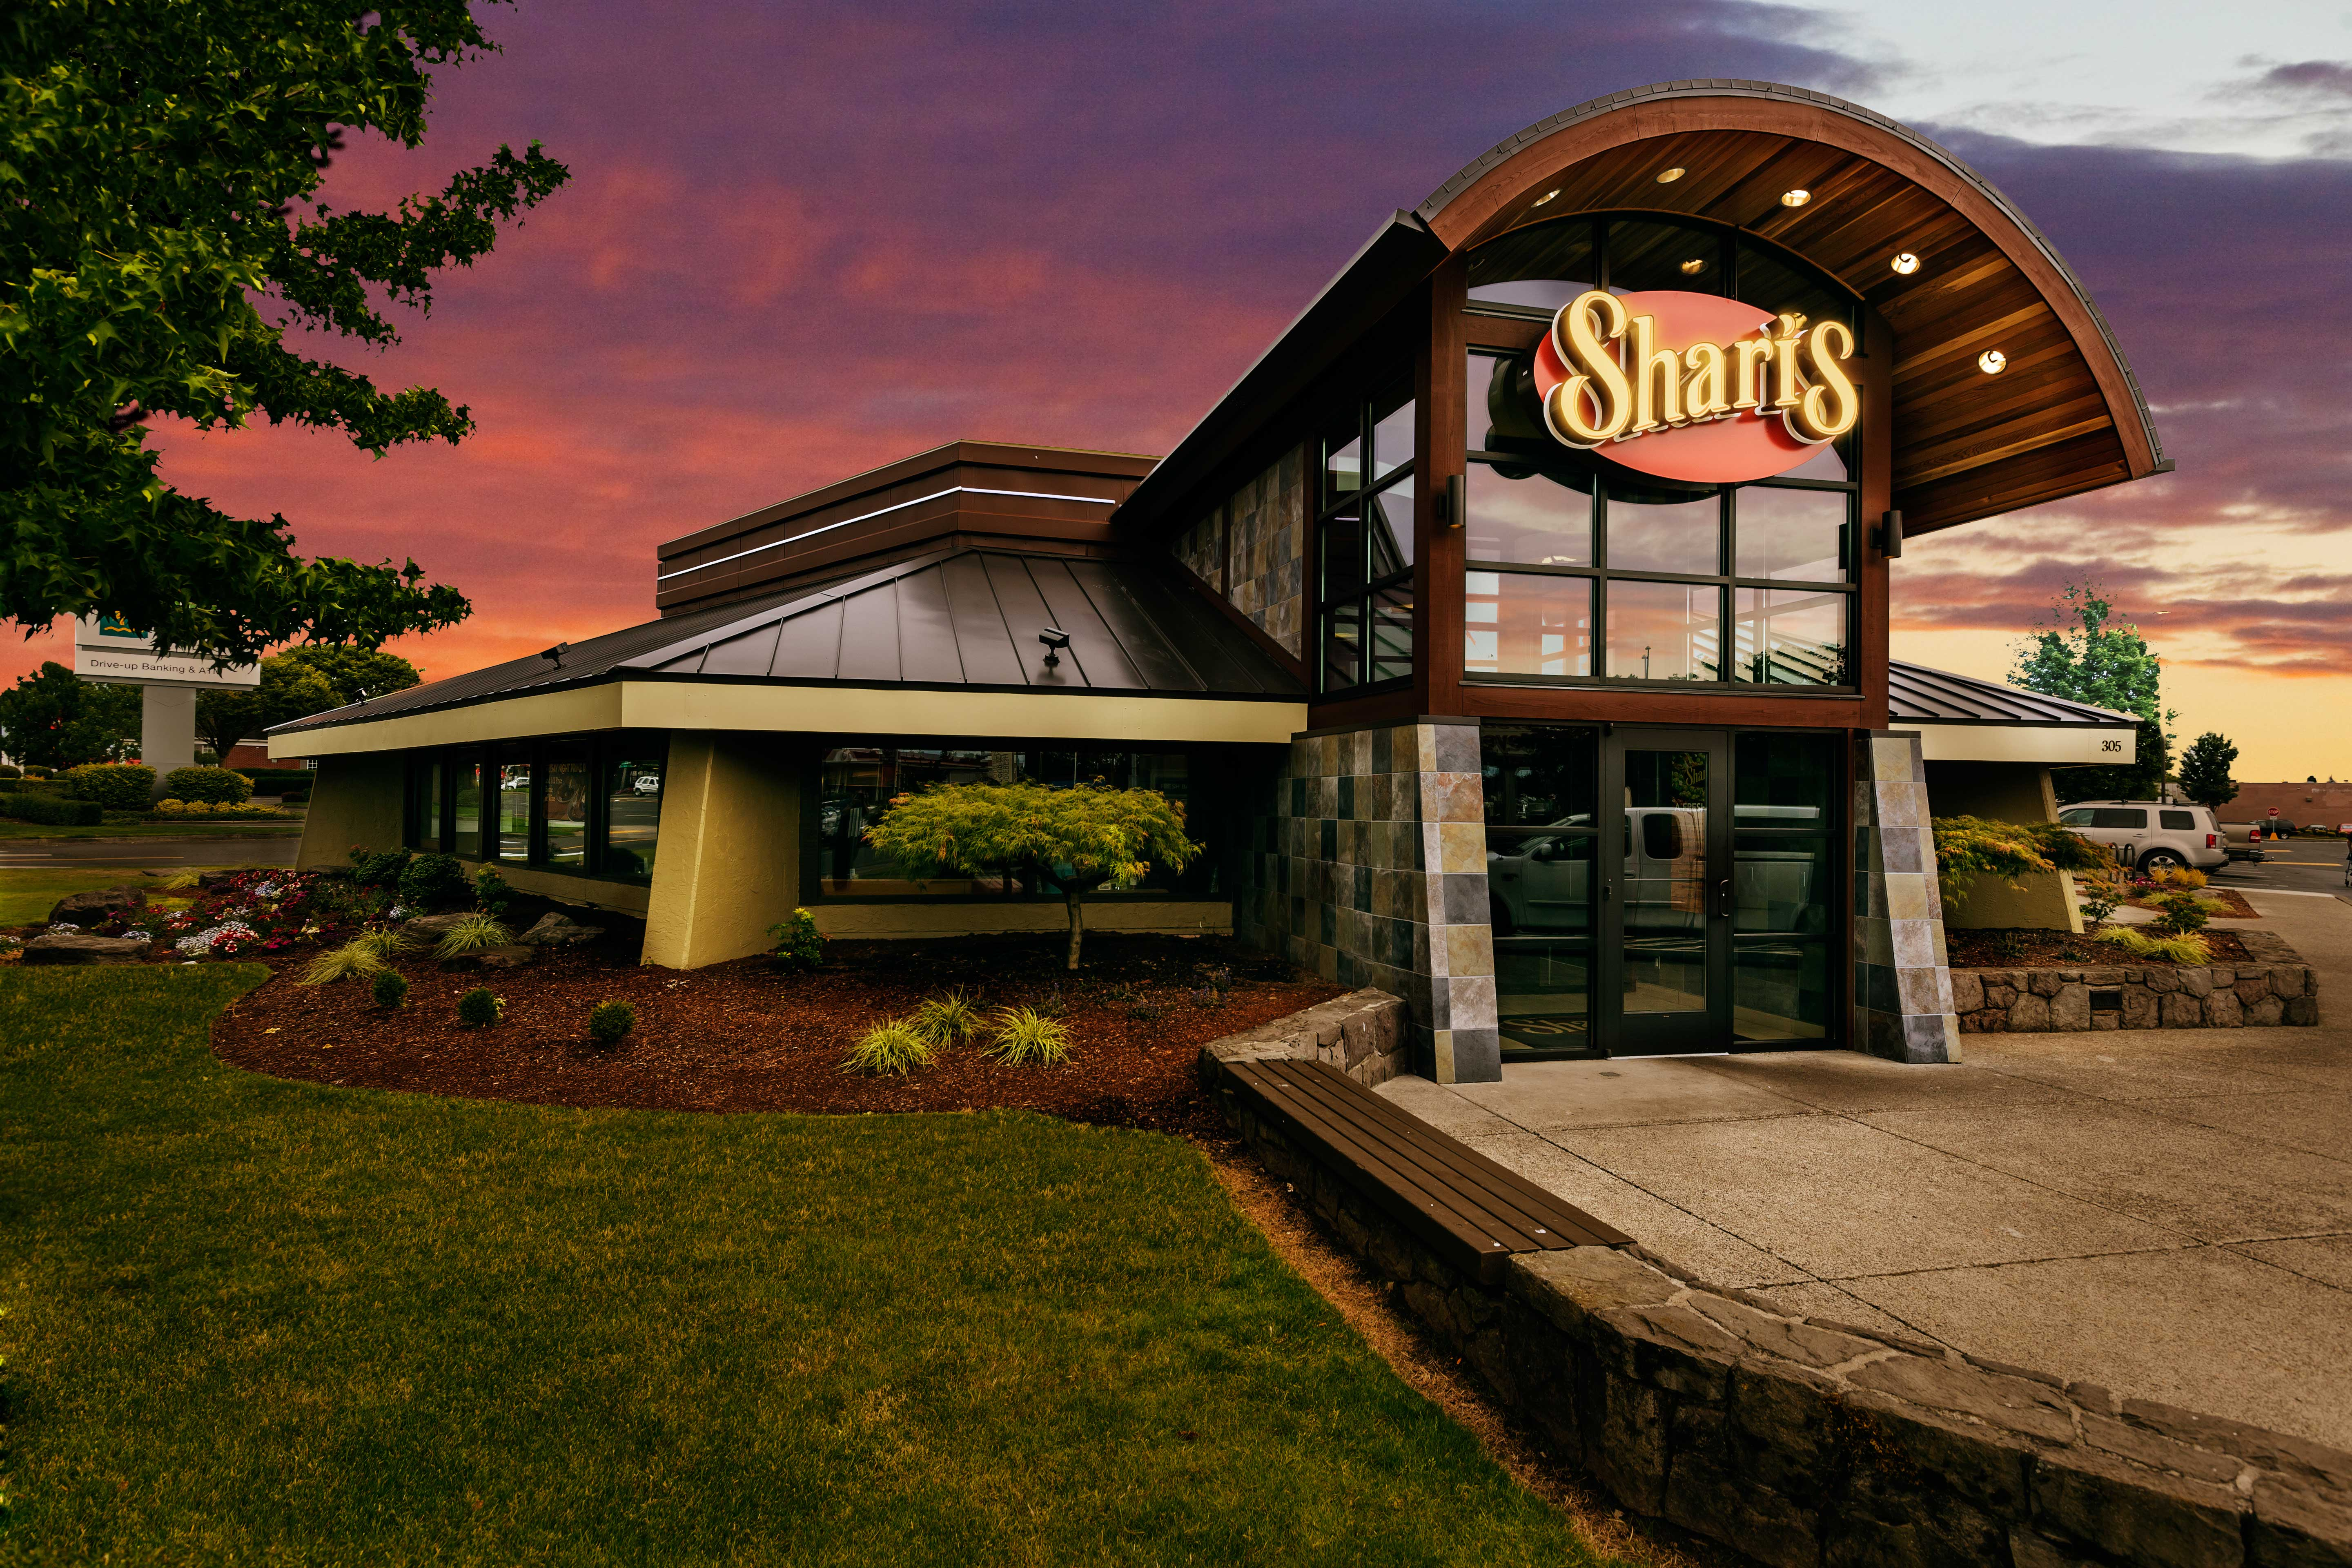 Shari S Sharis Café And Pies Is The First Full Service Restaurant